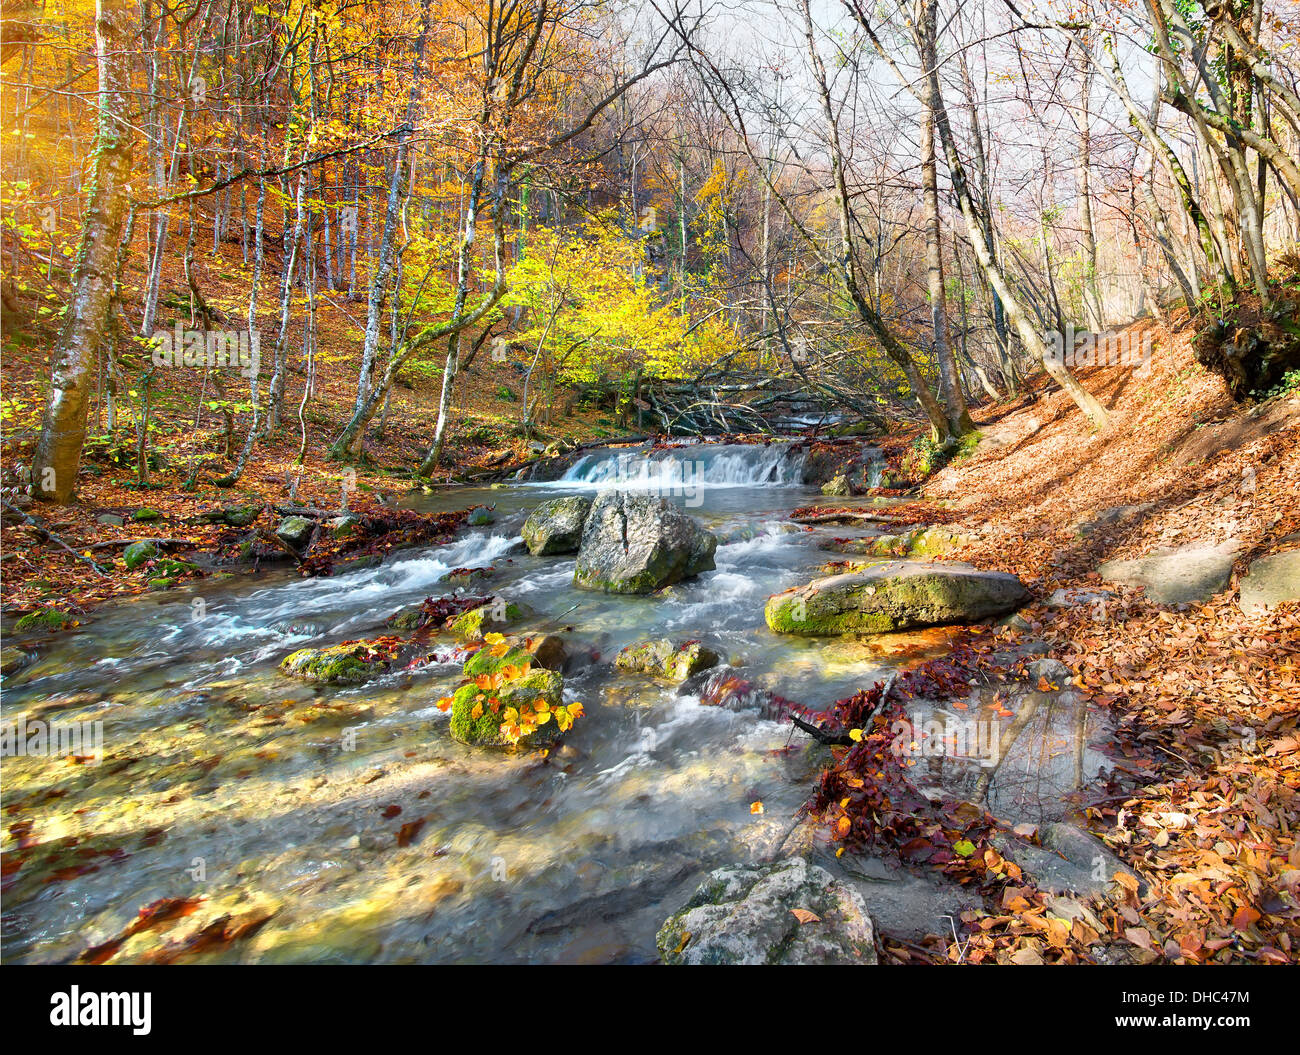 Beautiful fast river in mountain forest at sunrise - Stock Image